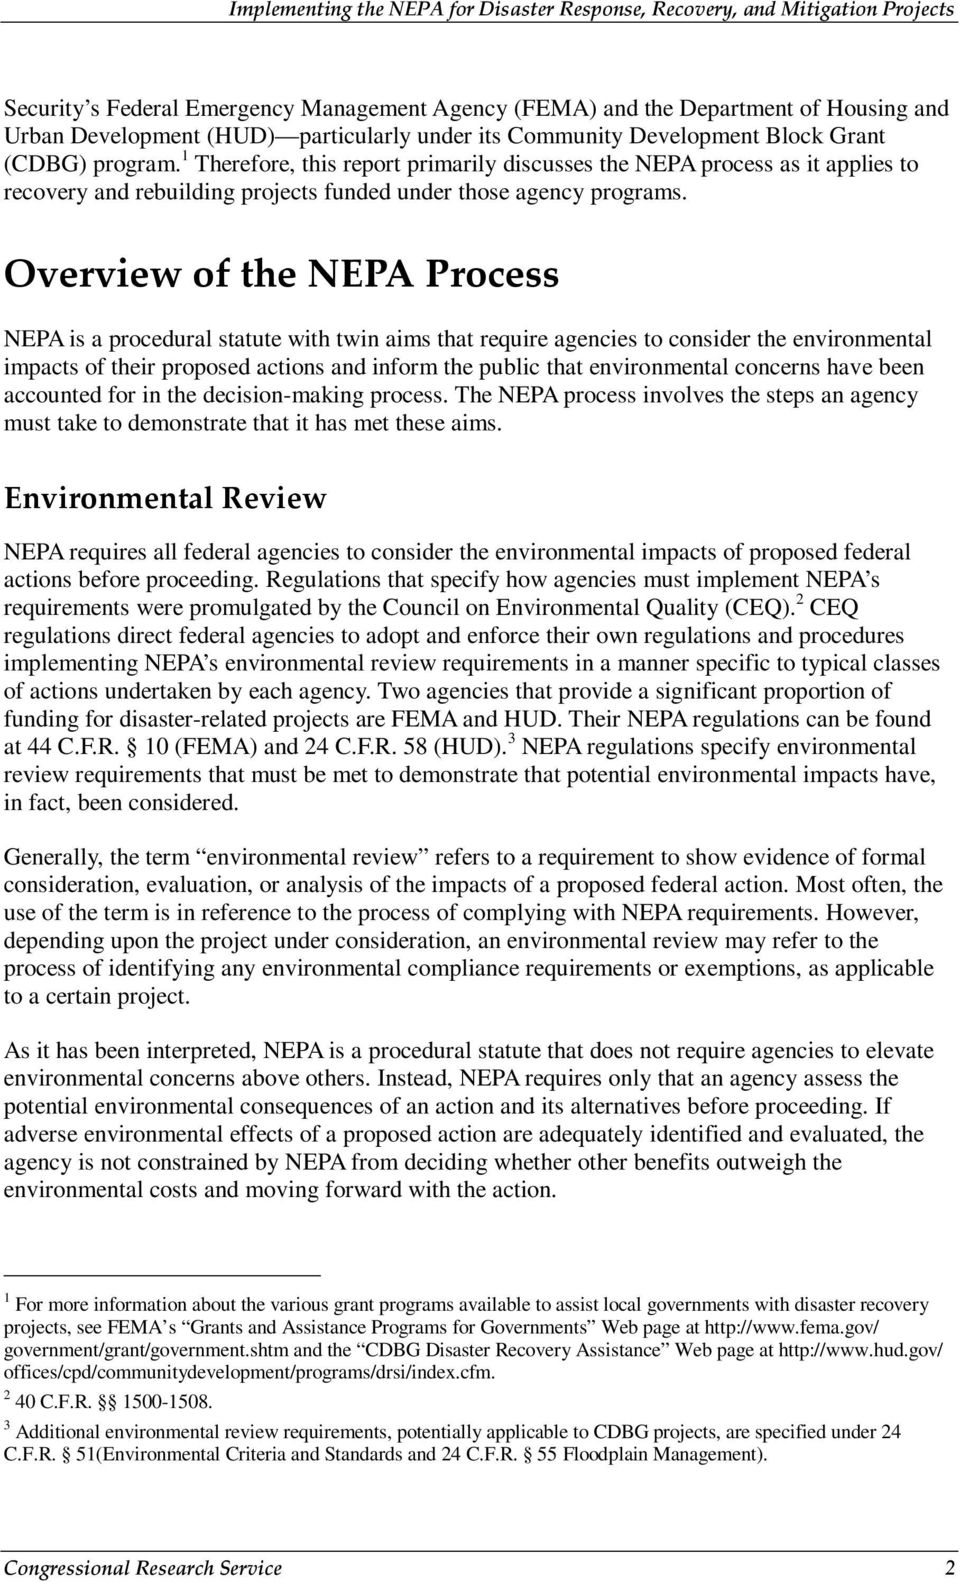 Overview of the NEPA Process NEPA is a procedural statute with twin aims that require agencies to consider the environmental impacts of their proposed actions and inform the public that environmental